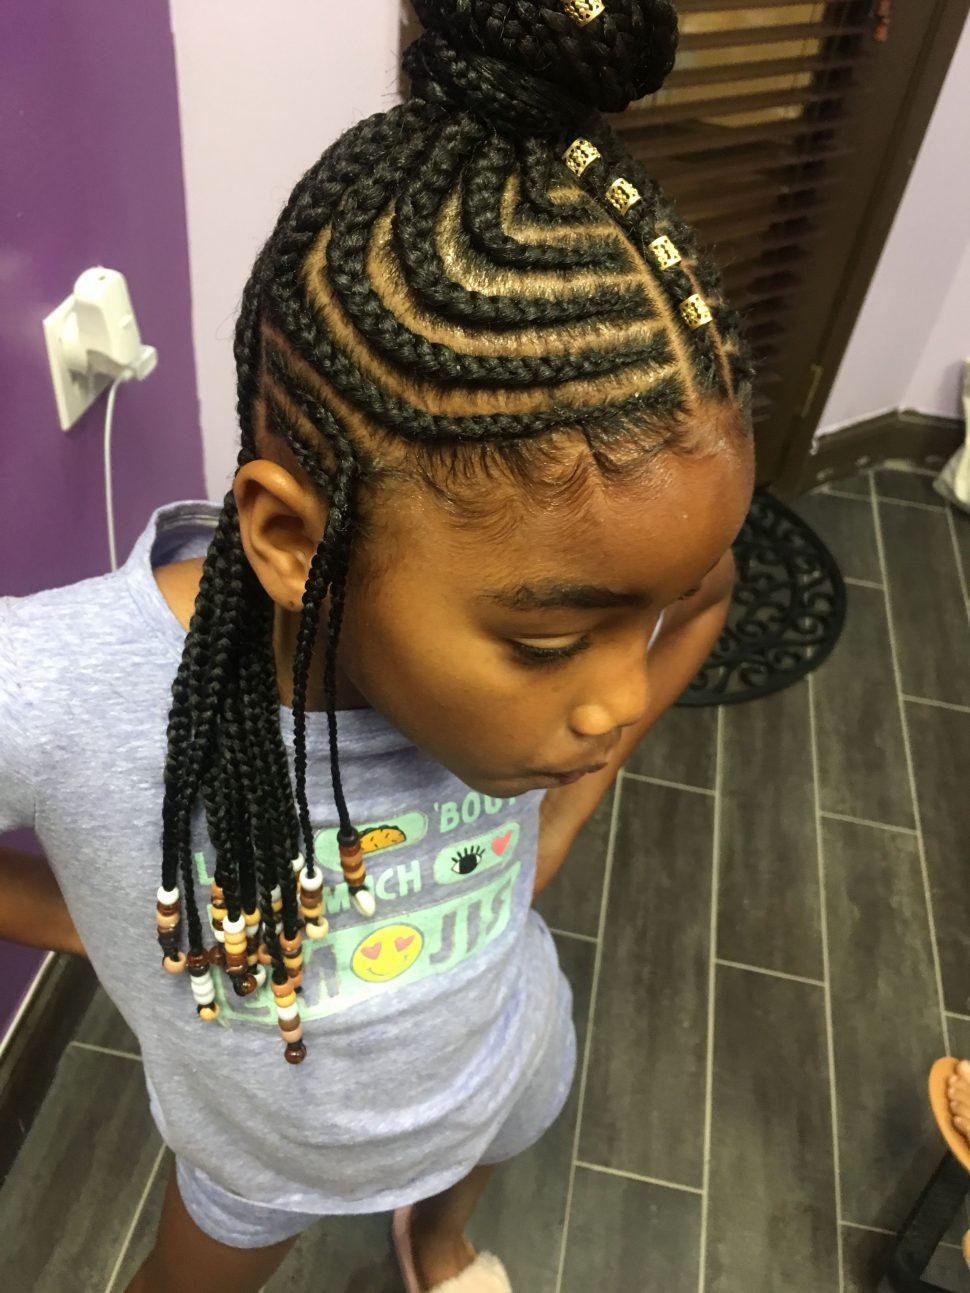 Hairstyles Kids Tribal Braids By Shugabraids Natural Hair Styles Little Also With Hairsty Hair Styles Black Kids Braids Hairstyles Braids Hairstyles Pictures